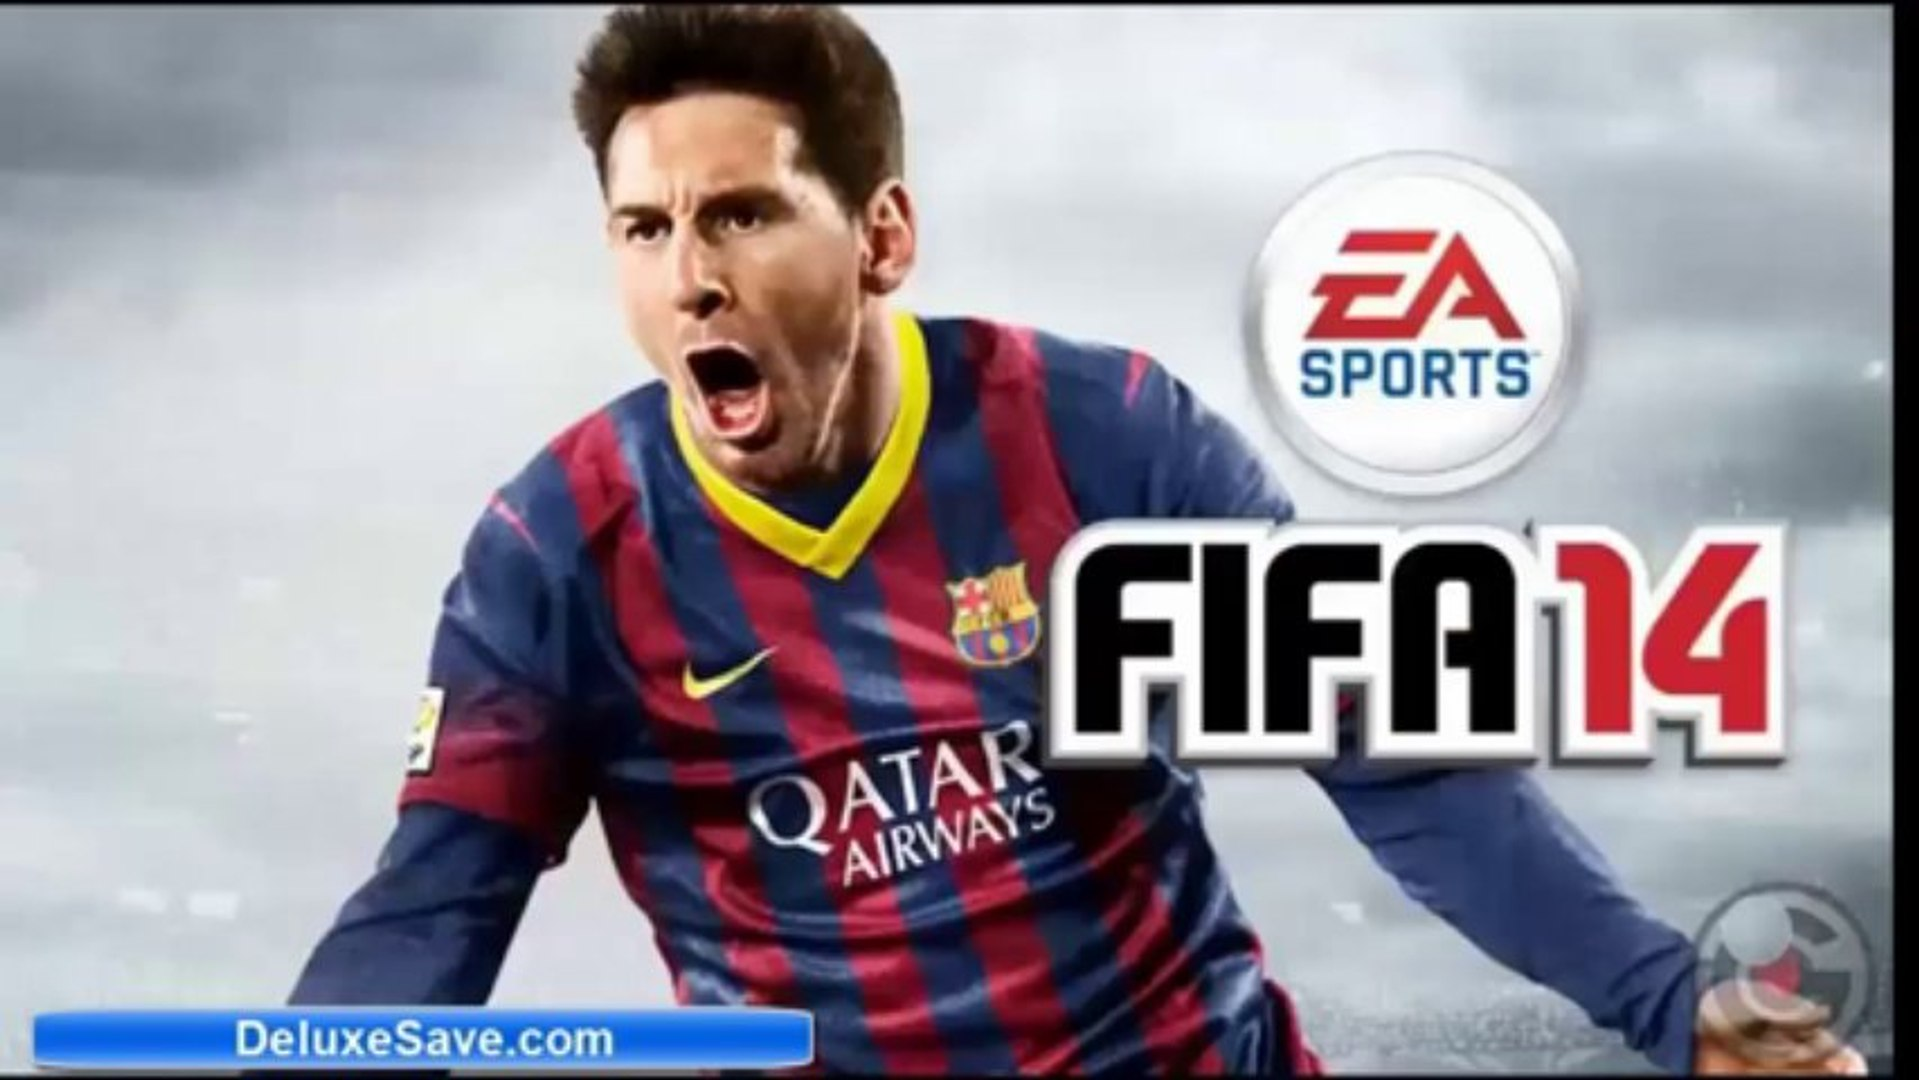 Fifa 14 Crack Download Full Reloaded Unlocked Skidrow Video Dailymotion